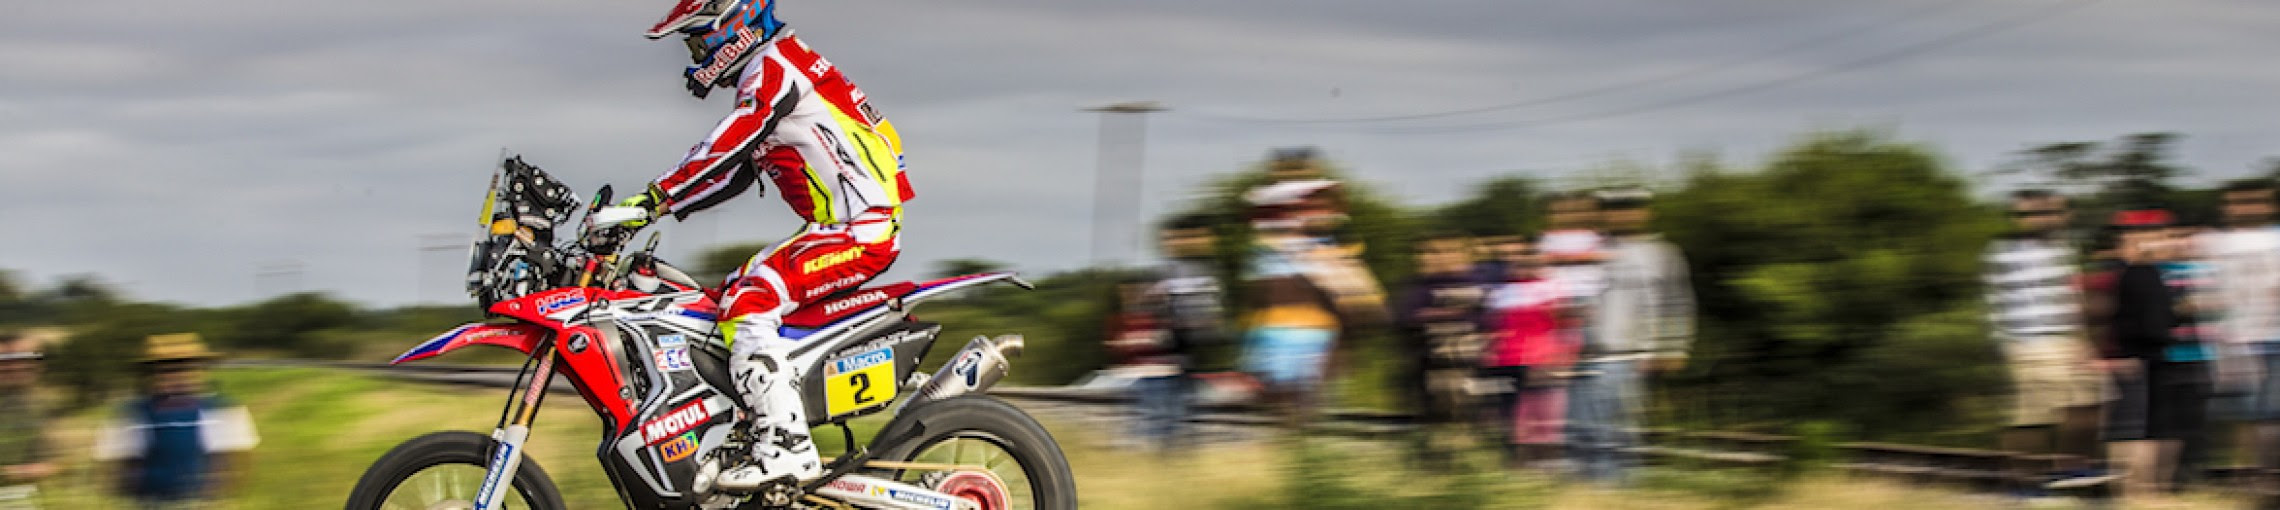 Barreda and Gonçalves seal first Team HRC double in the Dakar 2015